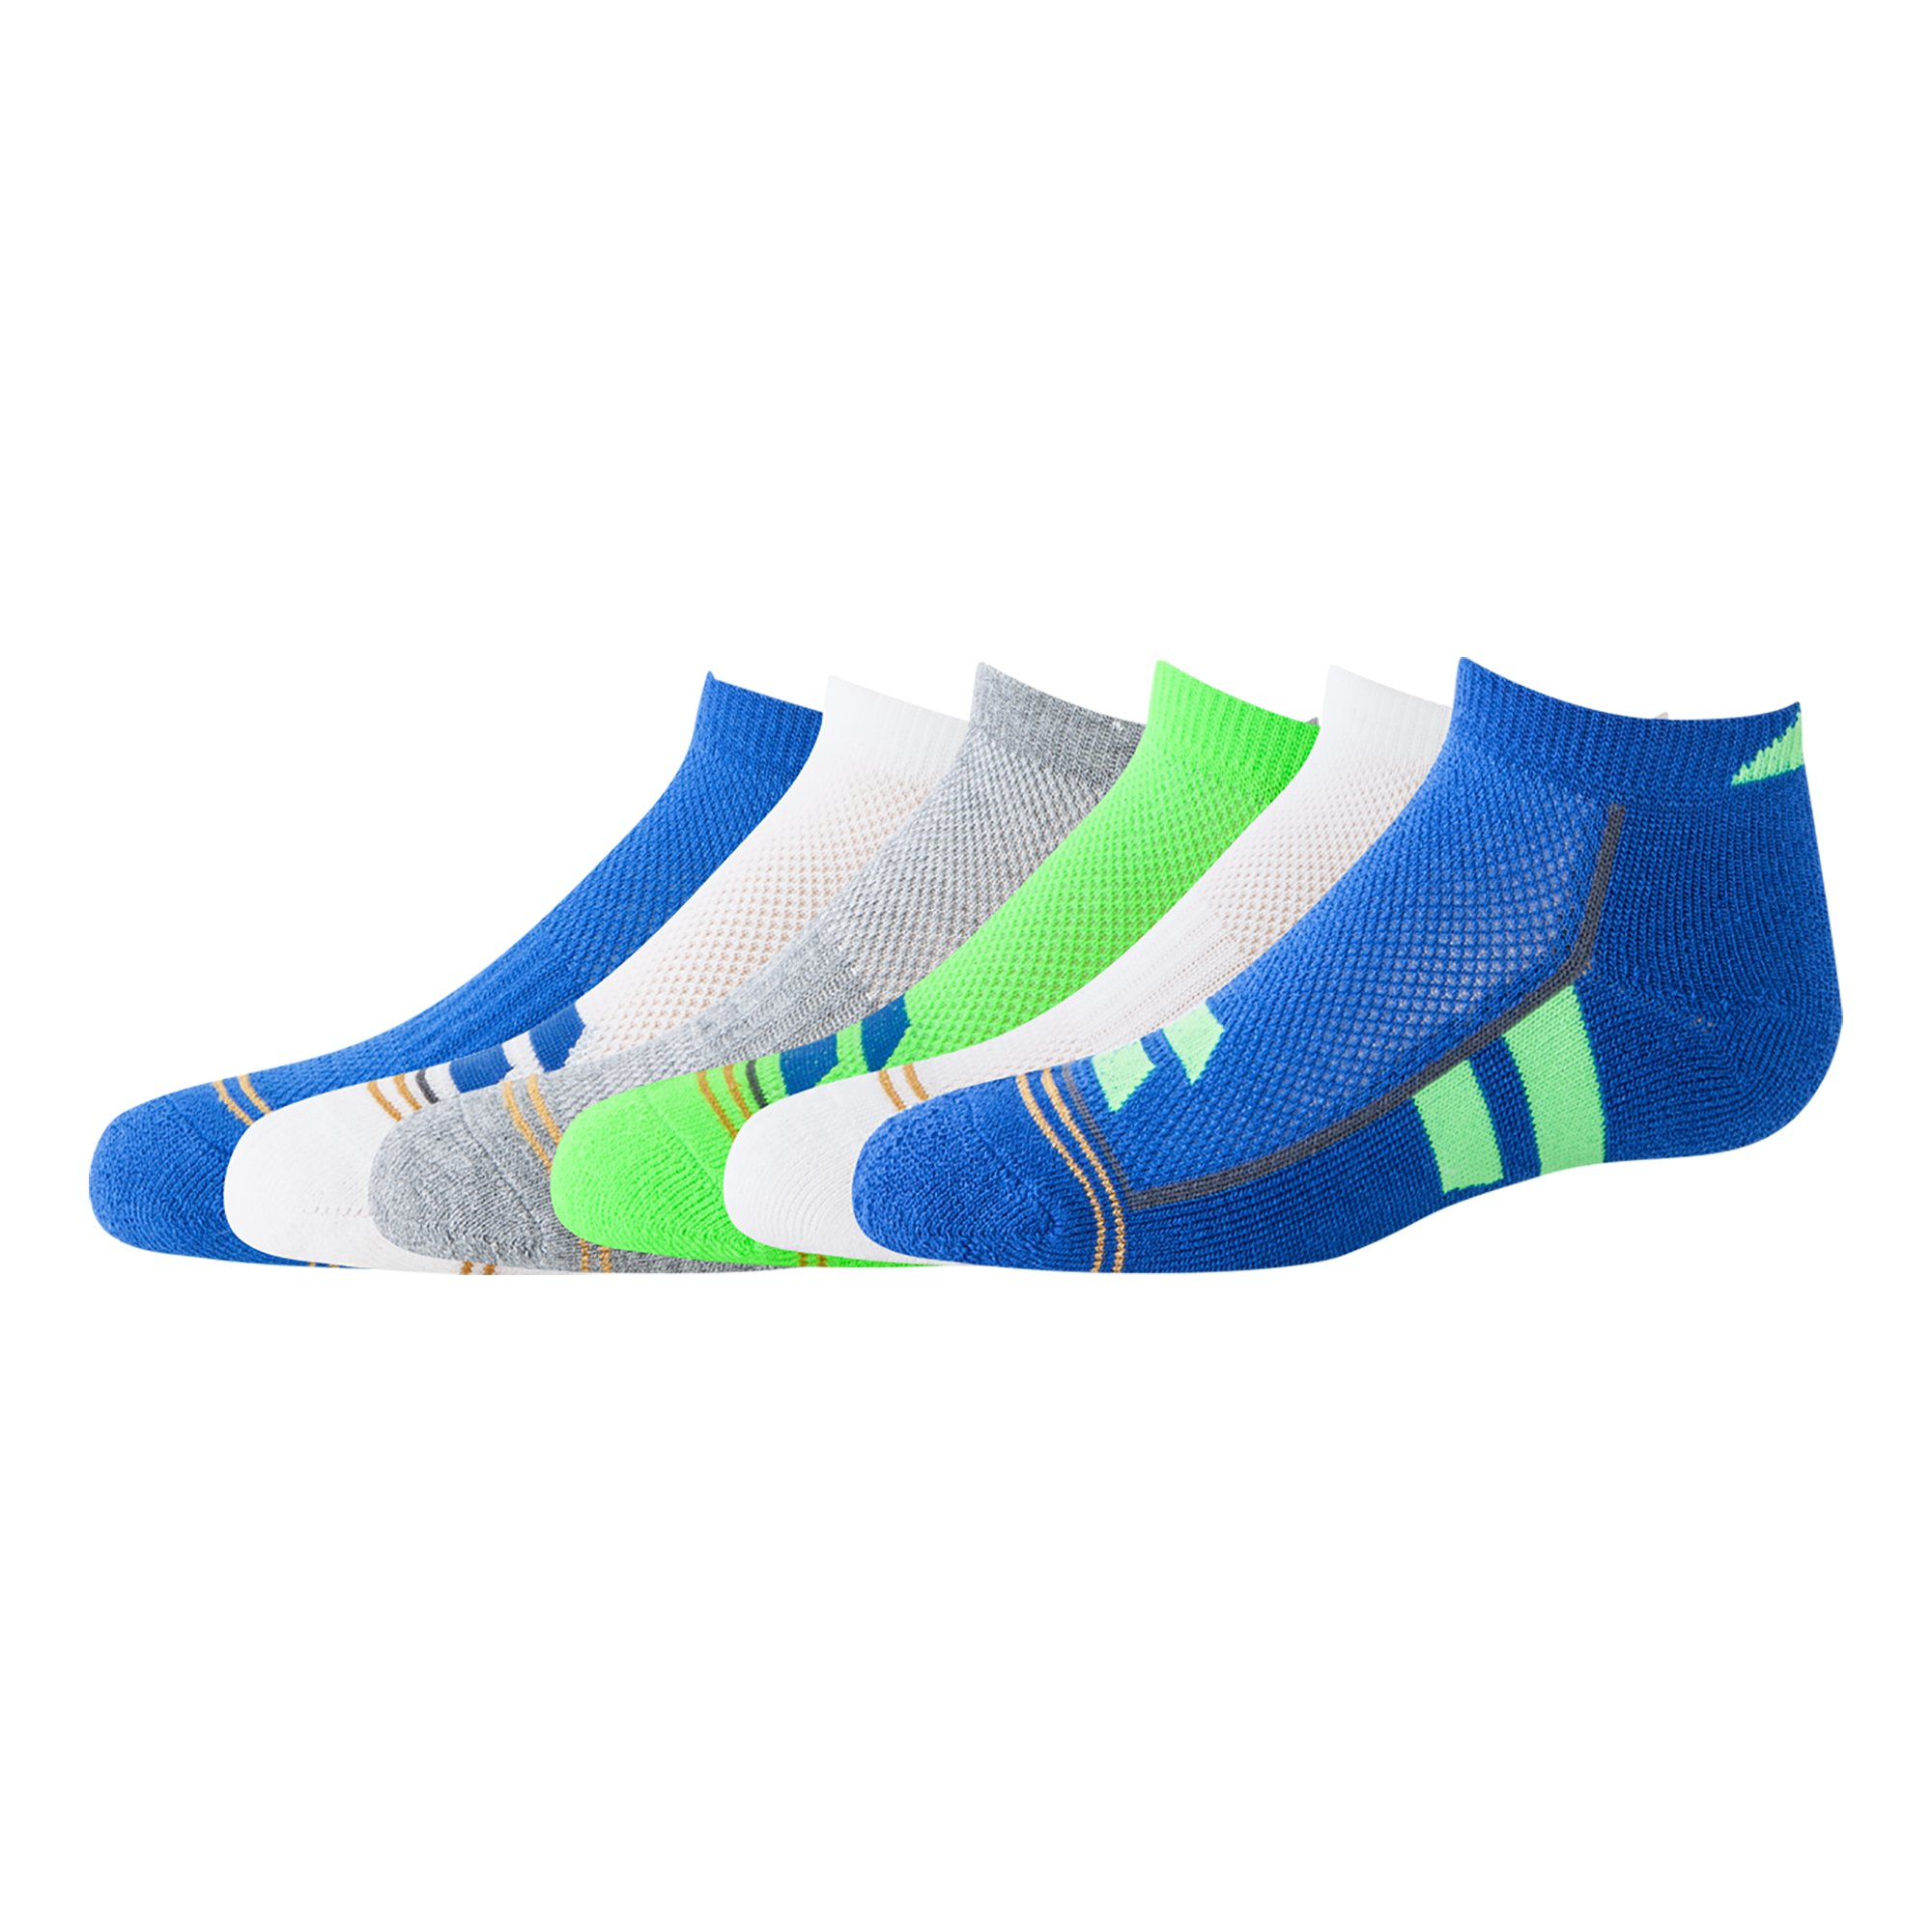 Gold Toe Big Boys' Ultra Tec No Show, 6-Pair, Color Block Royal/Green, Large